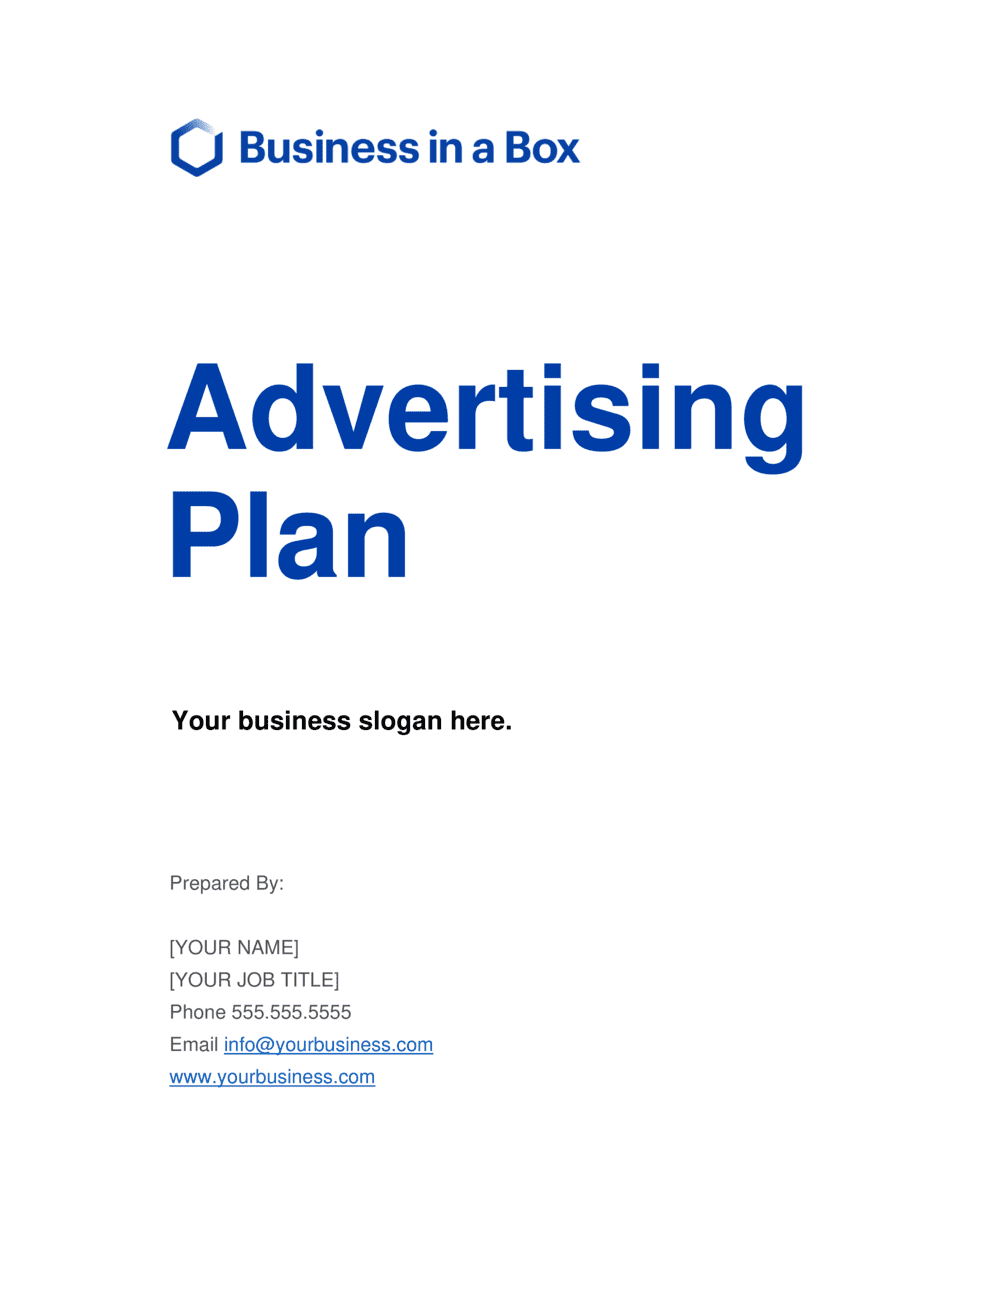 Business-in-a-Box's Advertising Plan Template